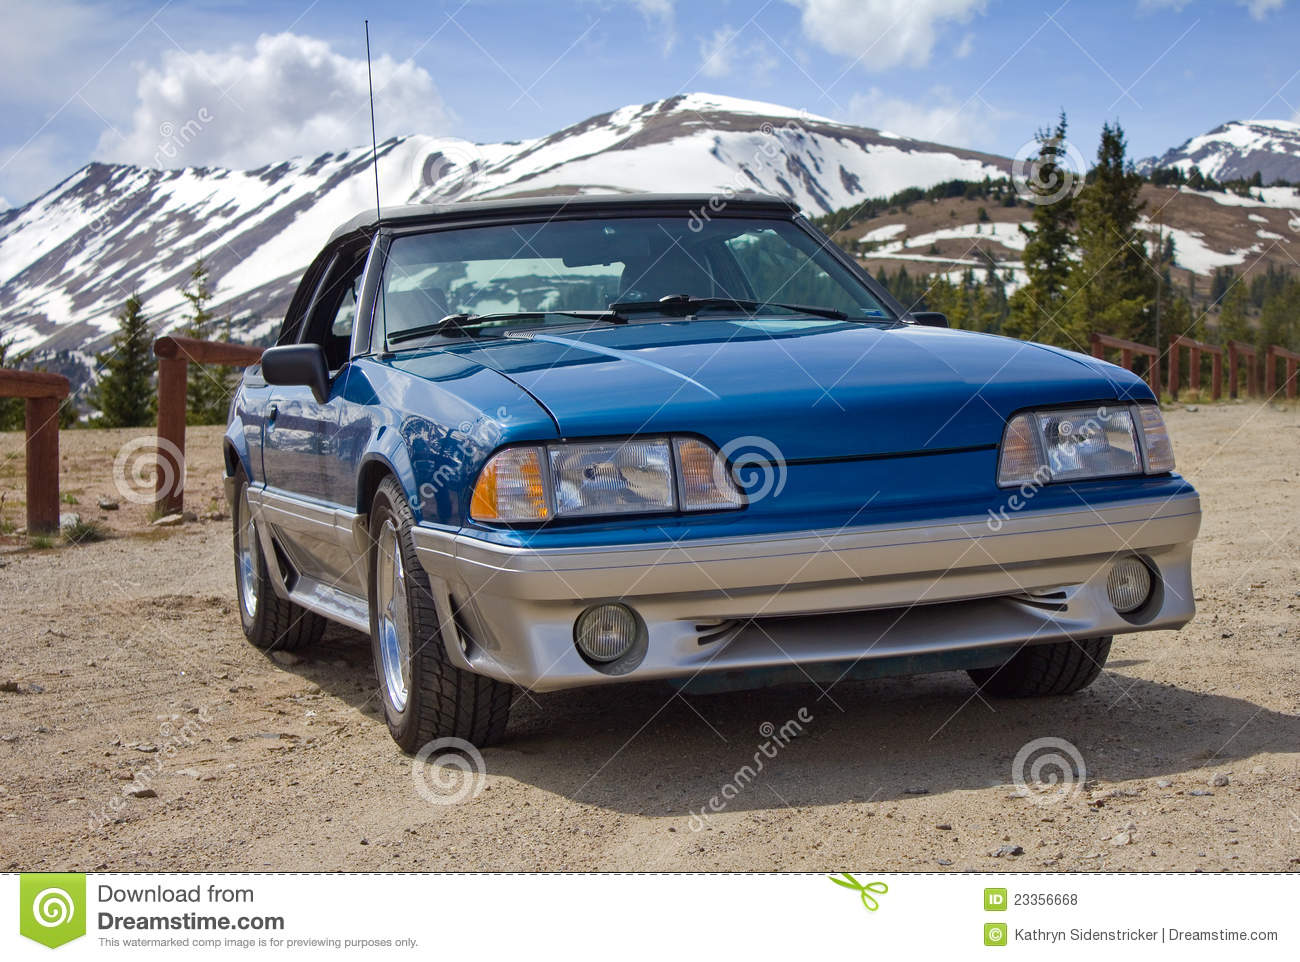 1989 Ford Mustang Convertible Blue